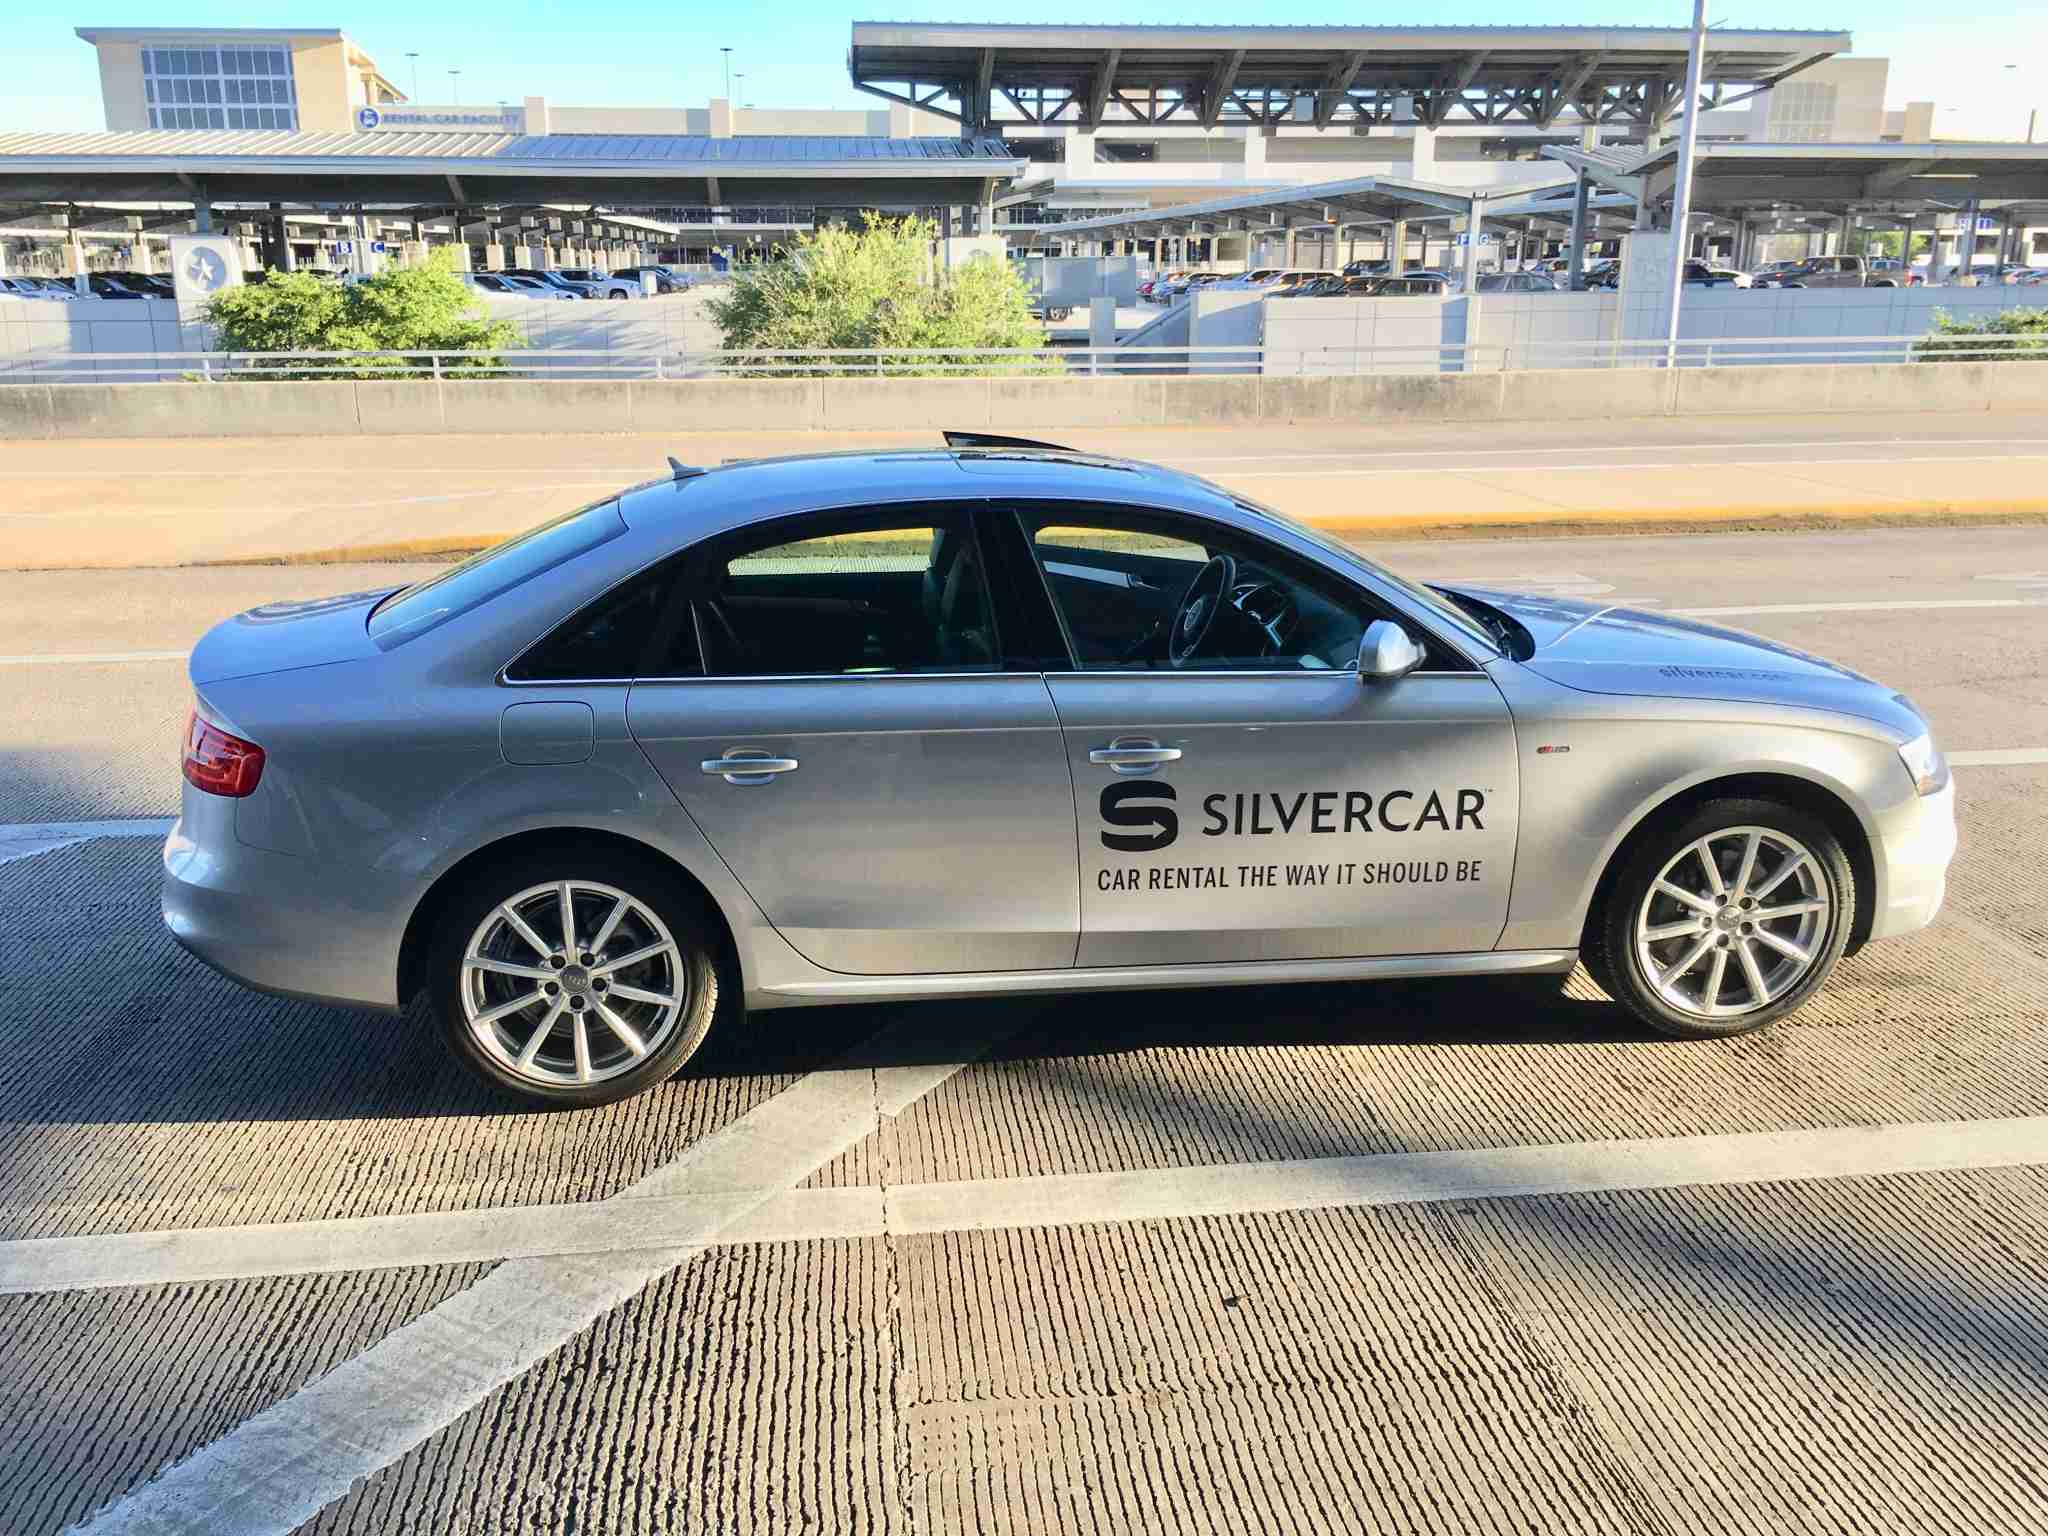 Silvercar picking us up in Austin (Summer Hull / The Points Guy)